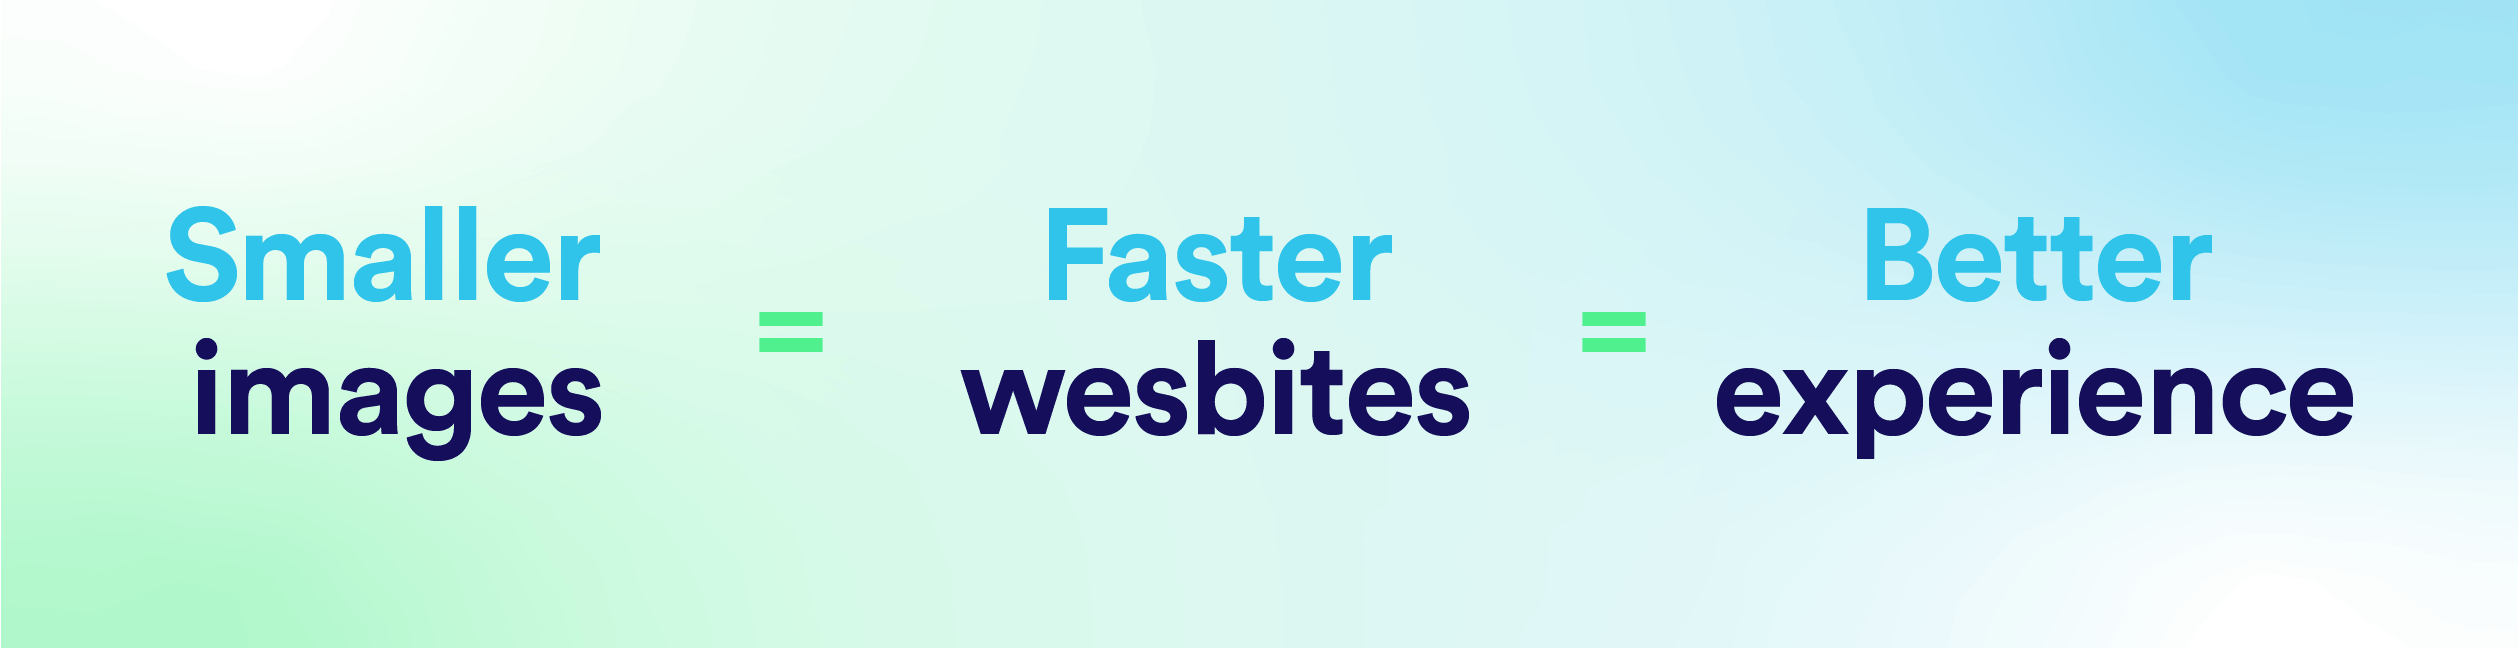 smaller images = faster websites = better experience